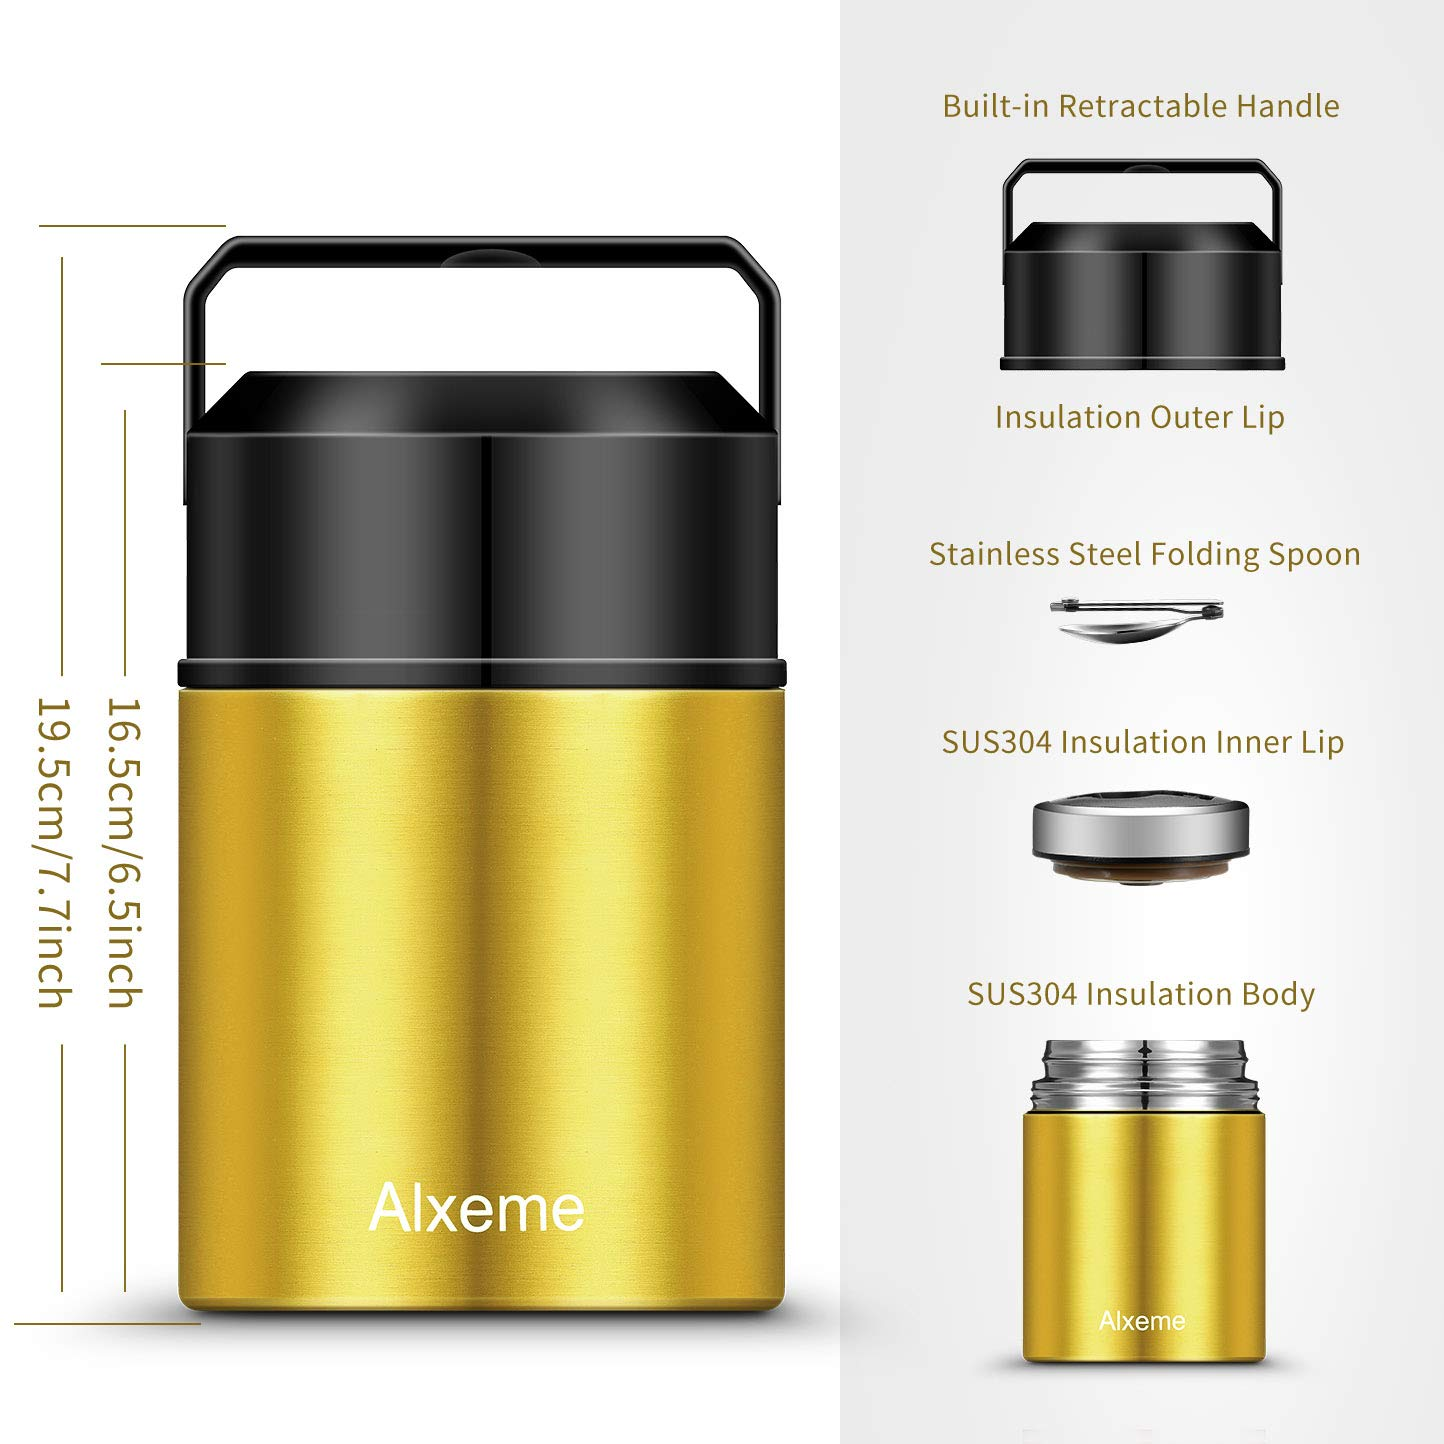 Soup Thermos Food Jar for Hot Food Wide Mouth Alxeme 27 oz Insulated Lunch Containers Stainless